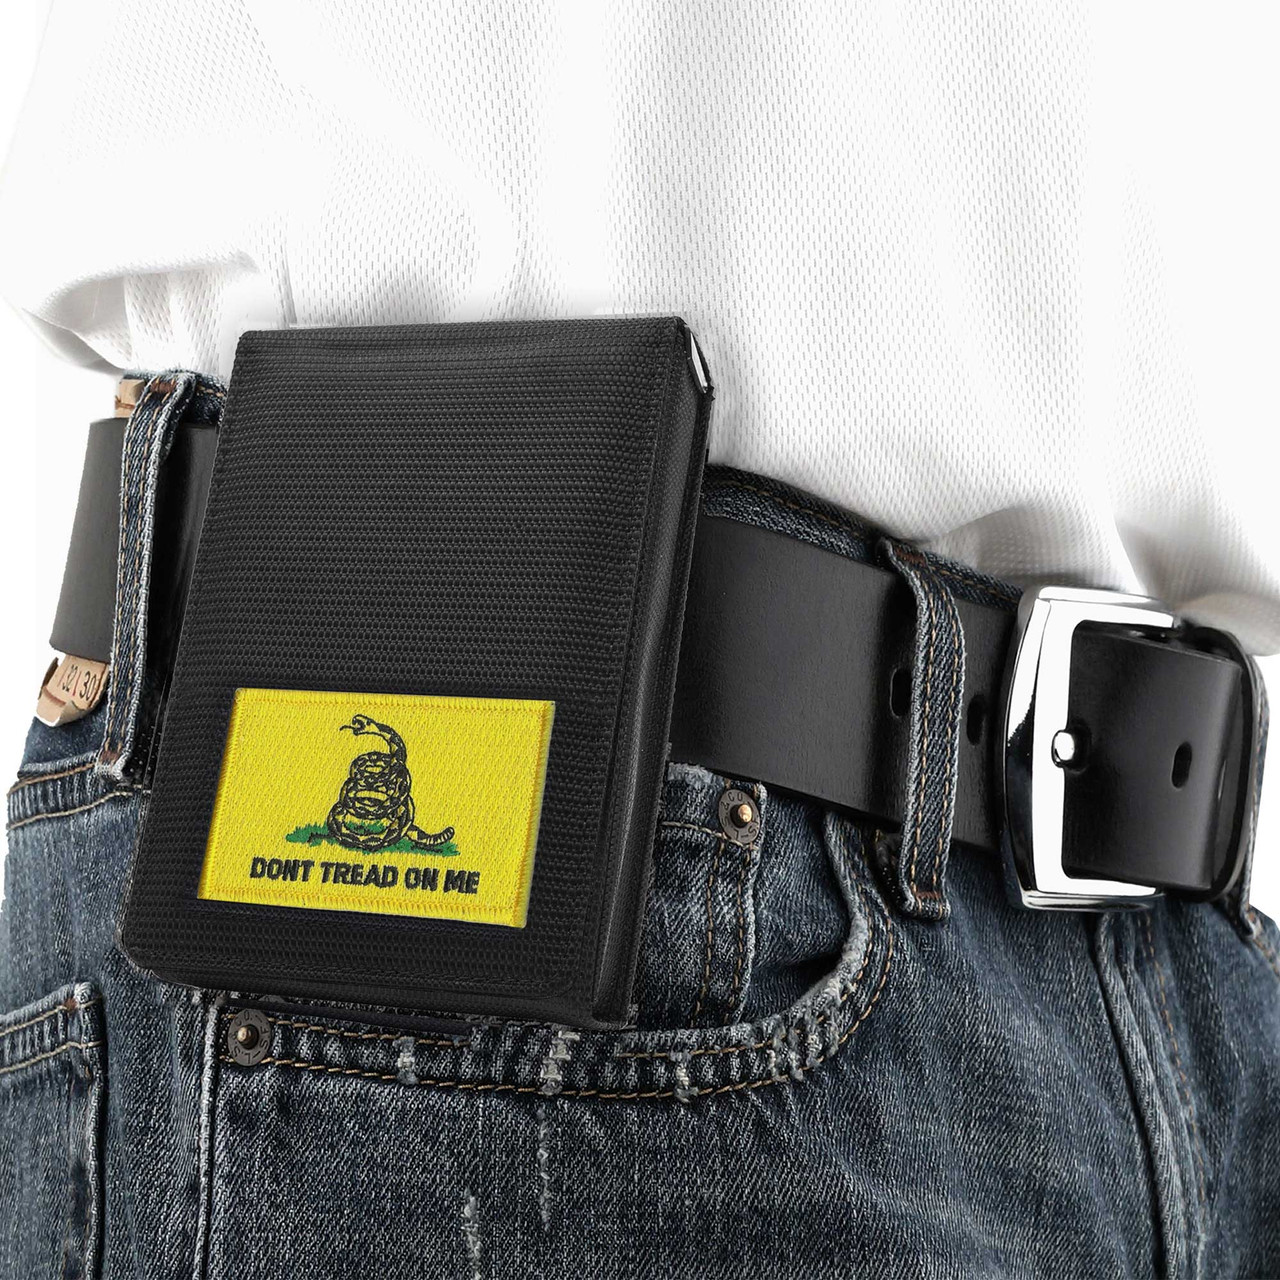 Walther PPK Don't Tread on Me Holster